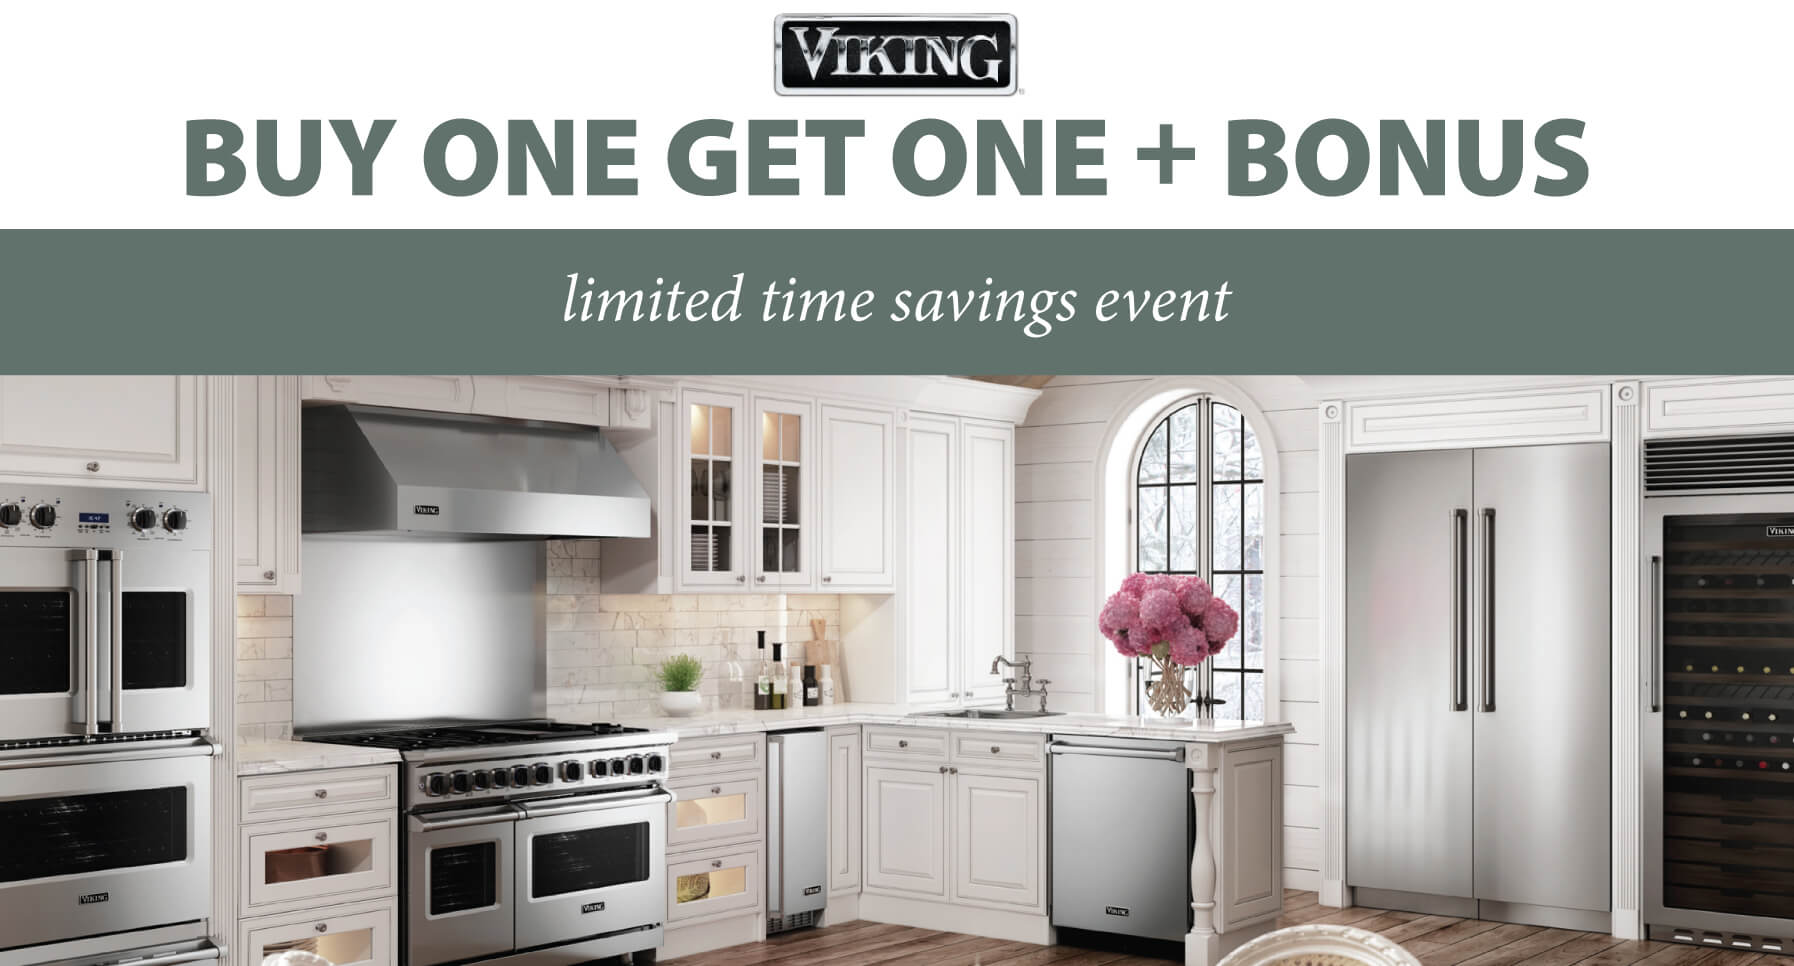 Viking: Buy One Get One, Buy Two Get Two!